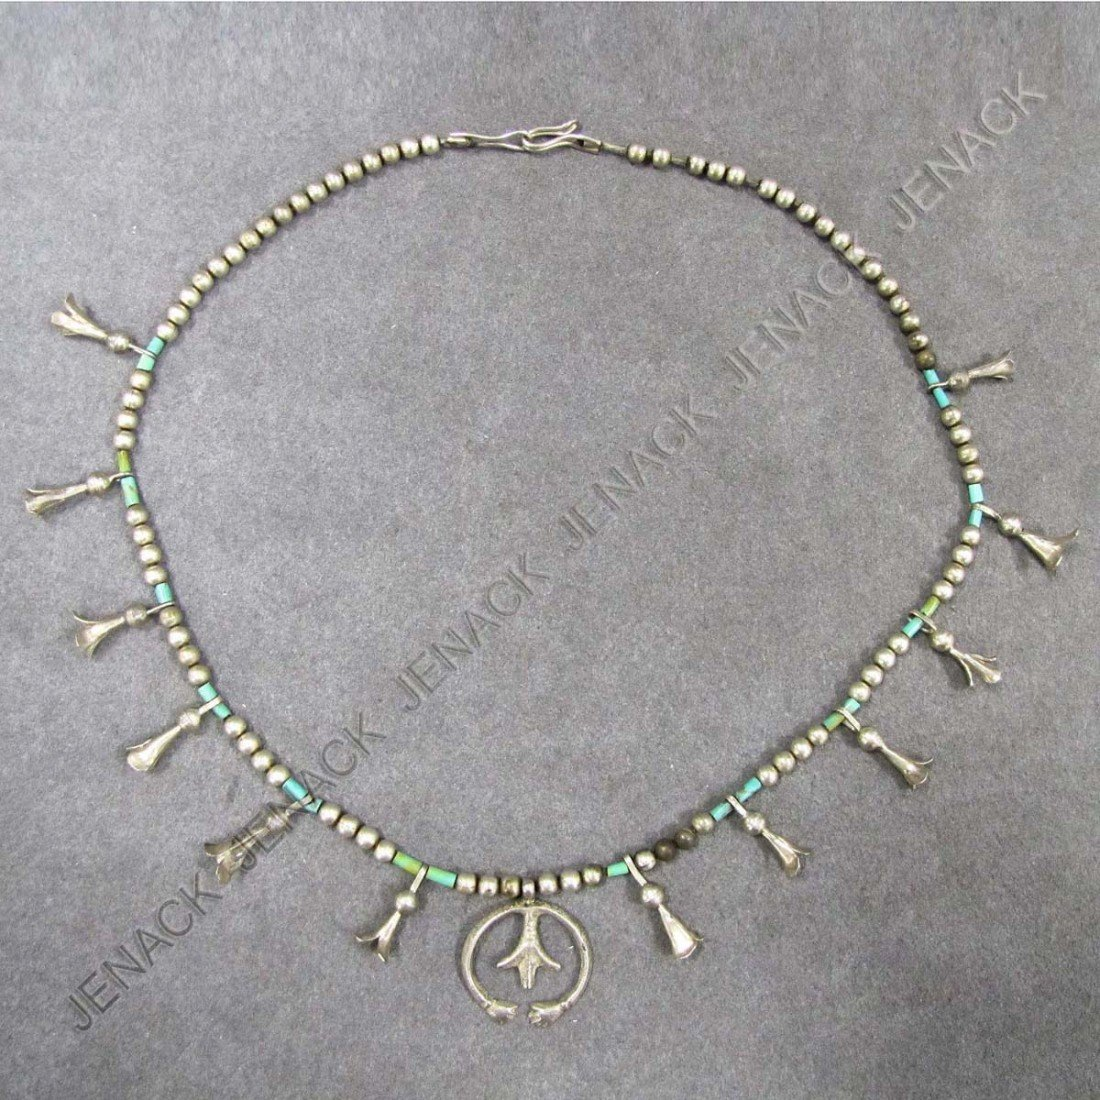 1: SOUTHWEST AMERICAN INDIAN SILVER NECKLACE